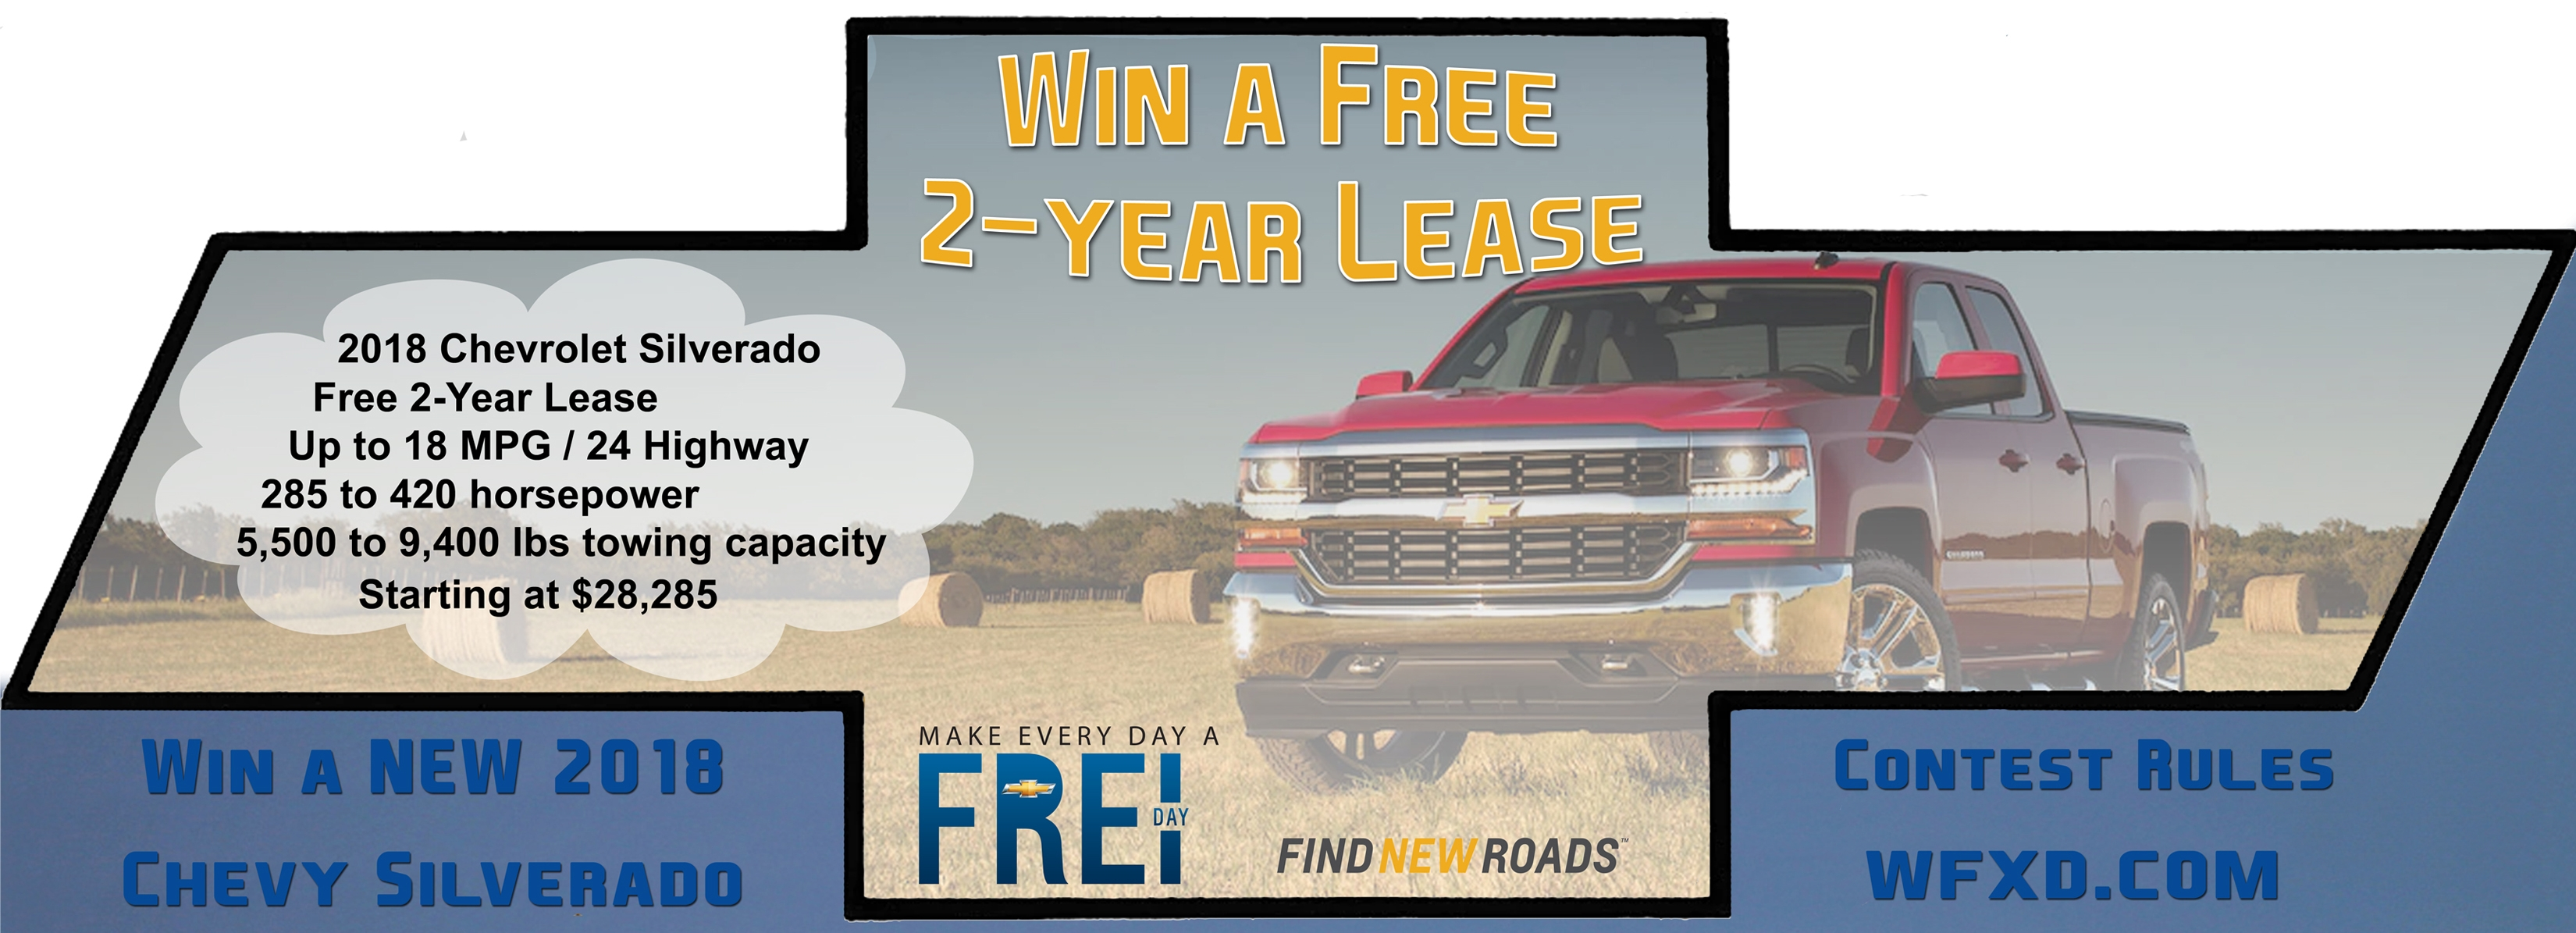 Sweepstakes to enter 2018 silverado